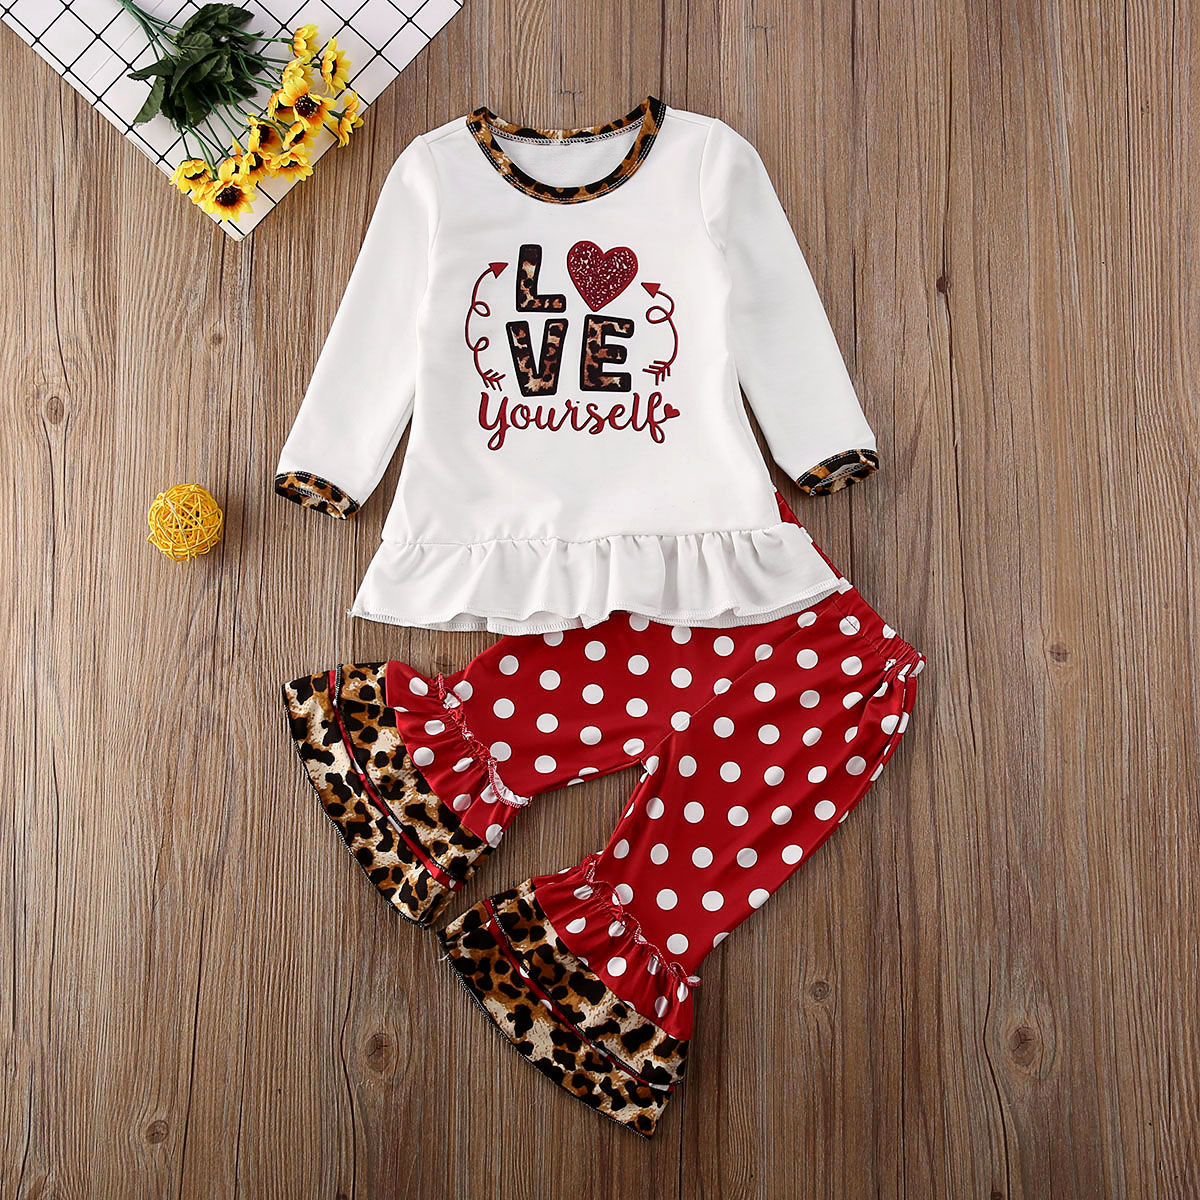 Toddler Kids Baby Girls T-shirt Tops+Bell Bottoms Pants Outfits Clothes 3PCS Set